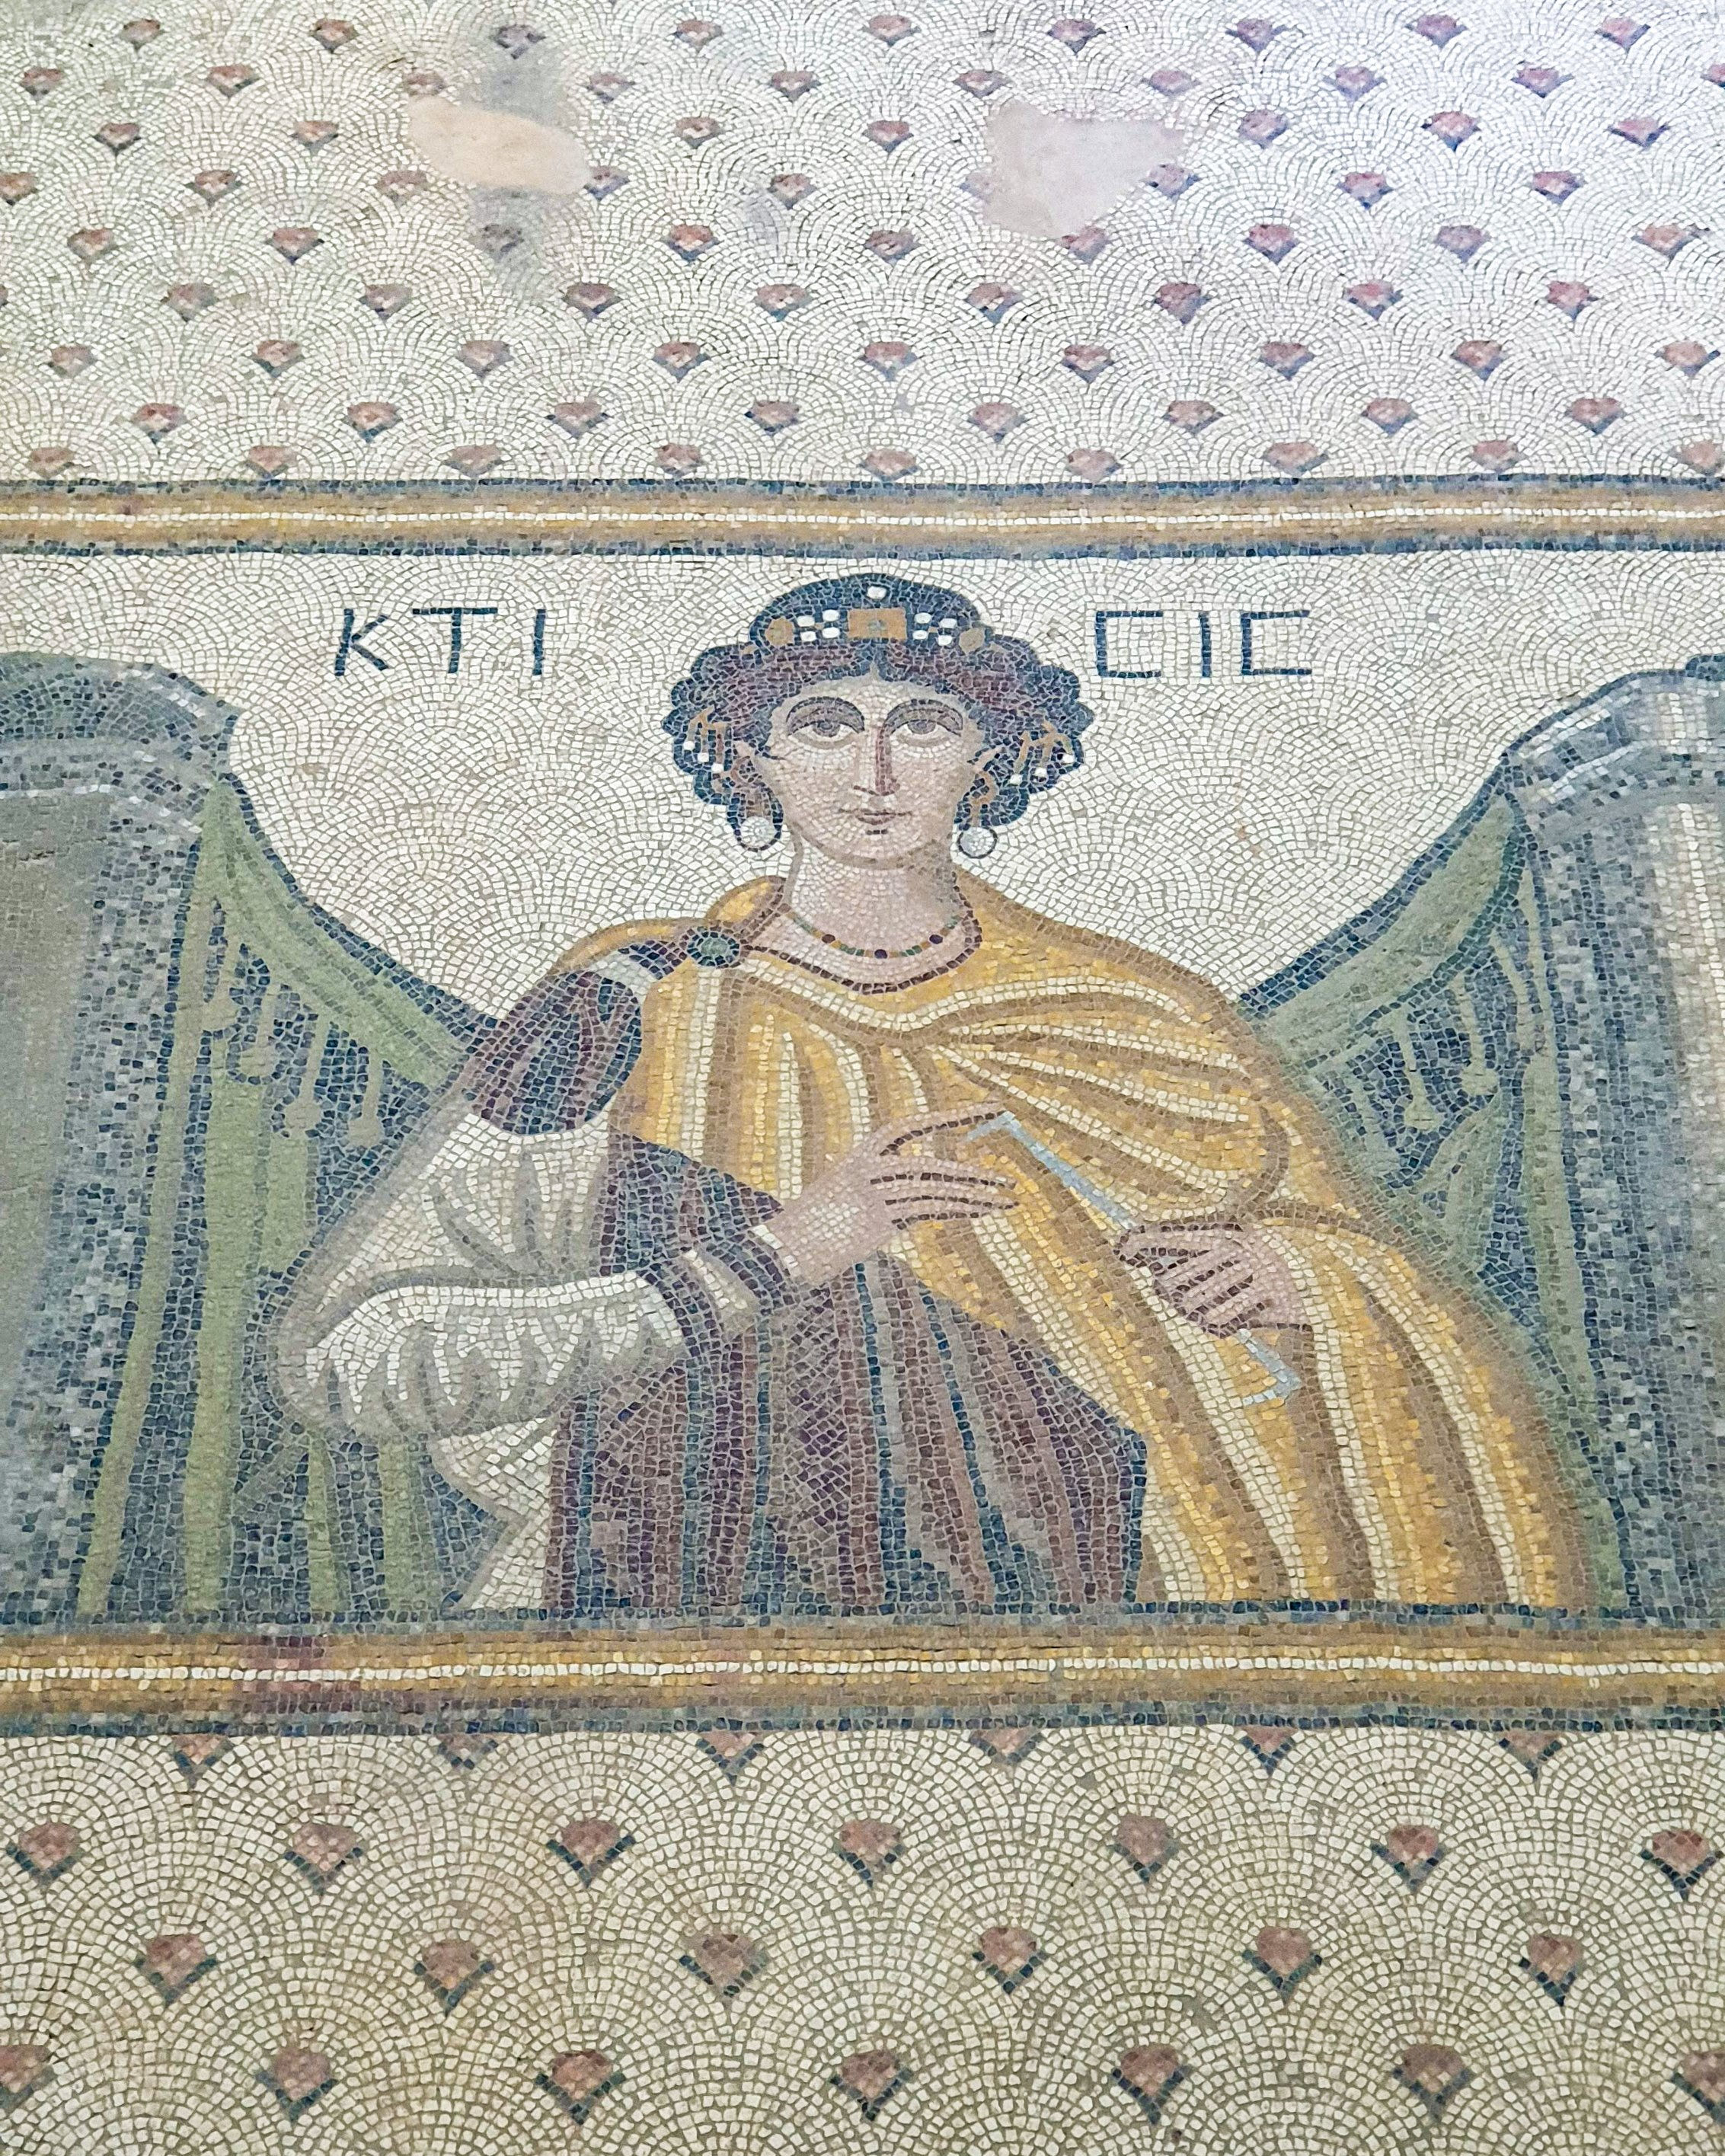 A mosaic of Goddess Ktisis. (Photo by Argun Konuk)